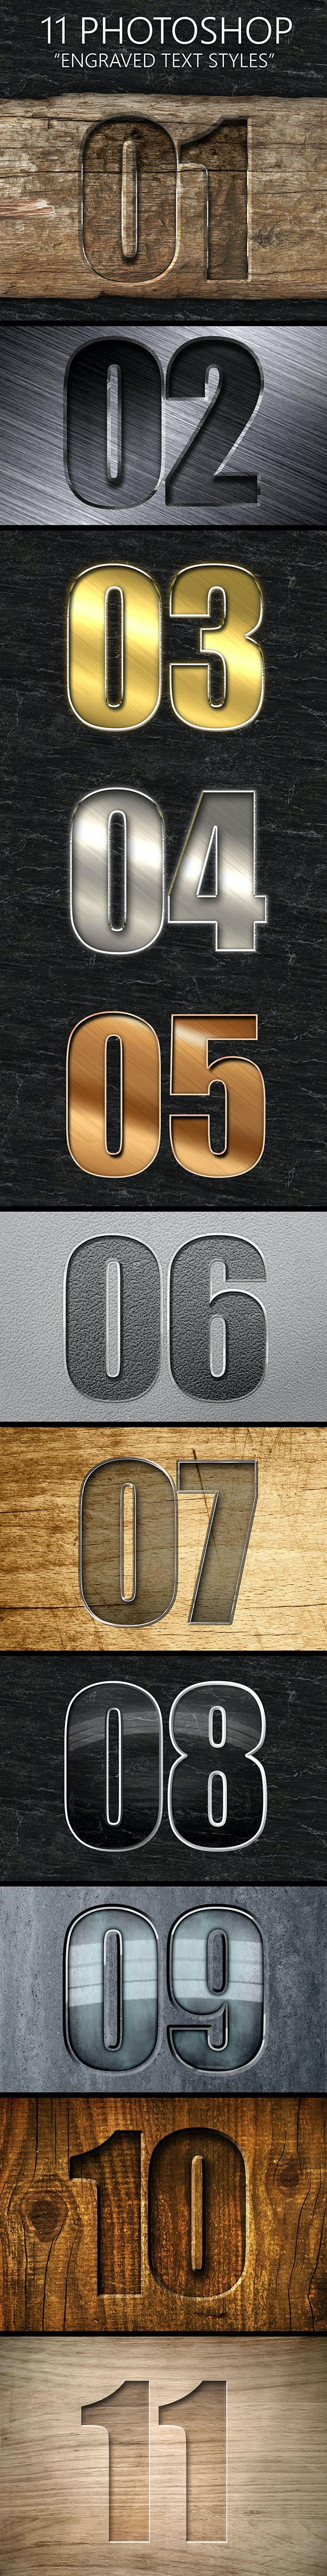 11 Engraved Text Styles - Text Effects Styles